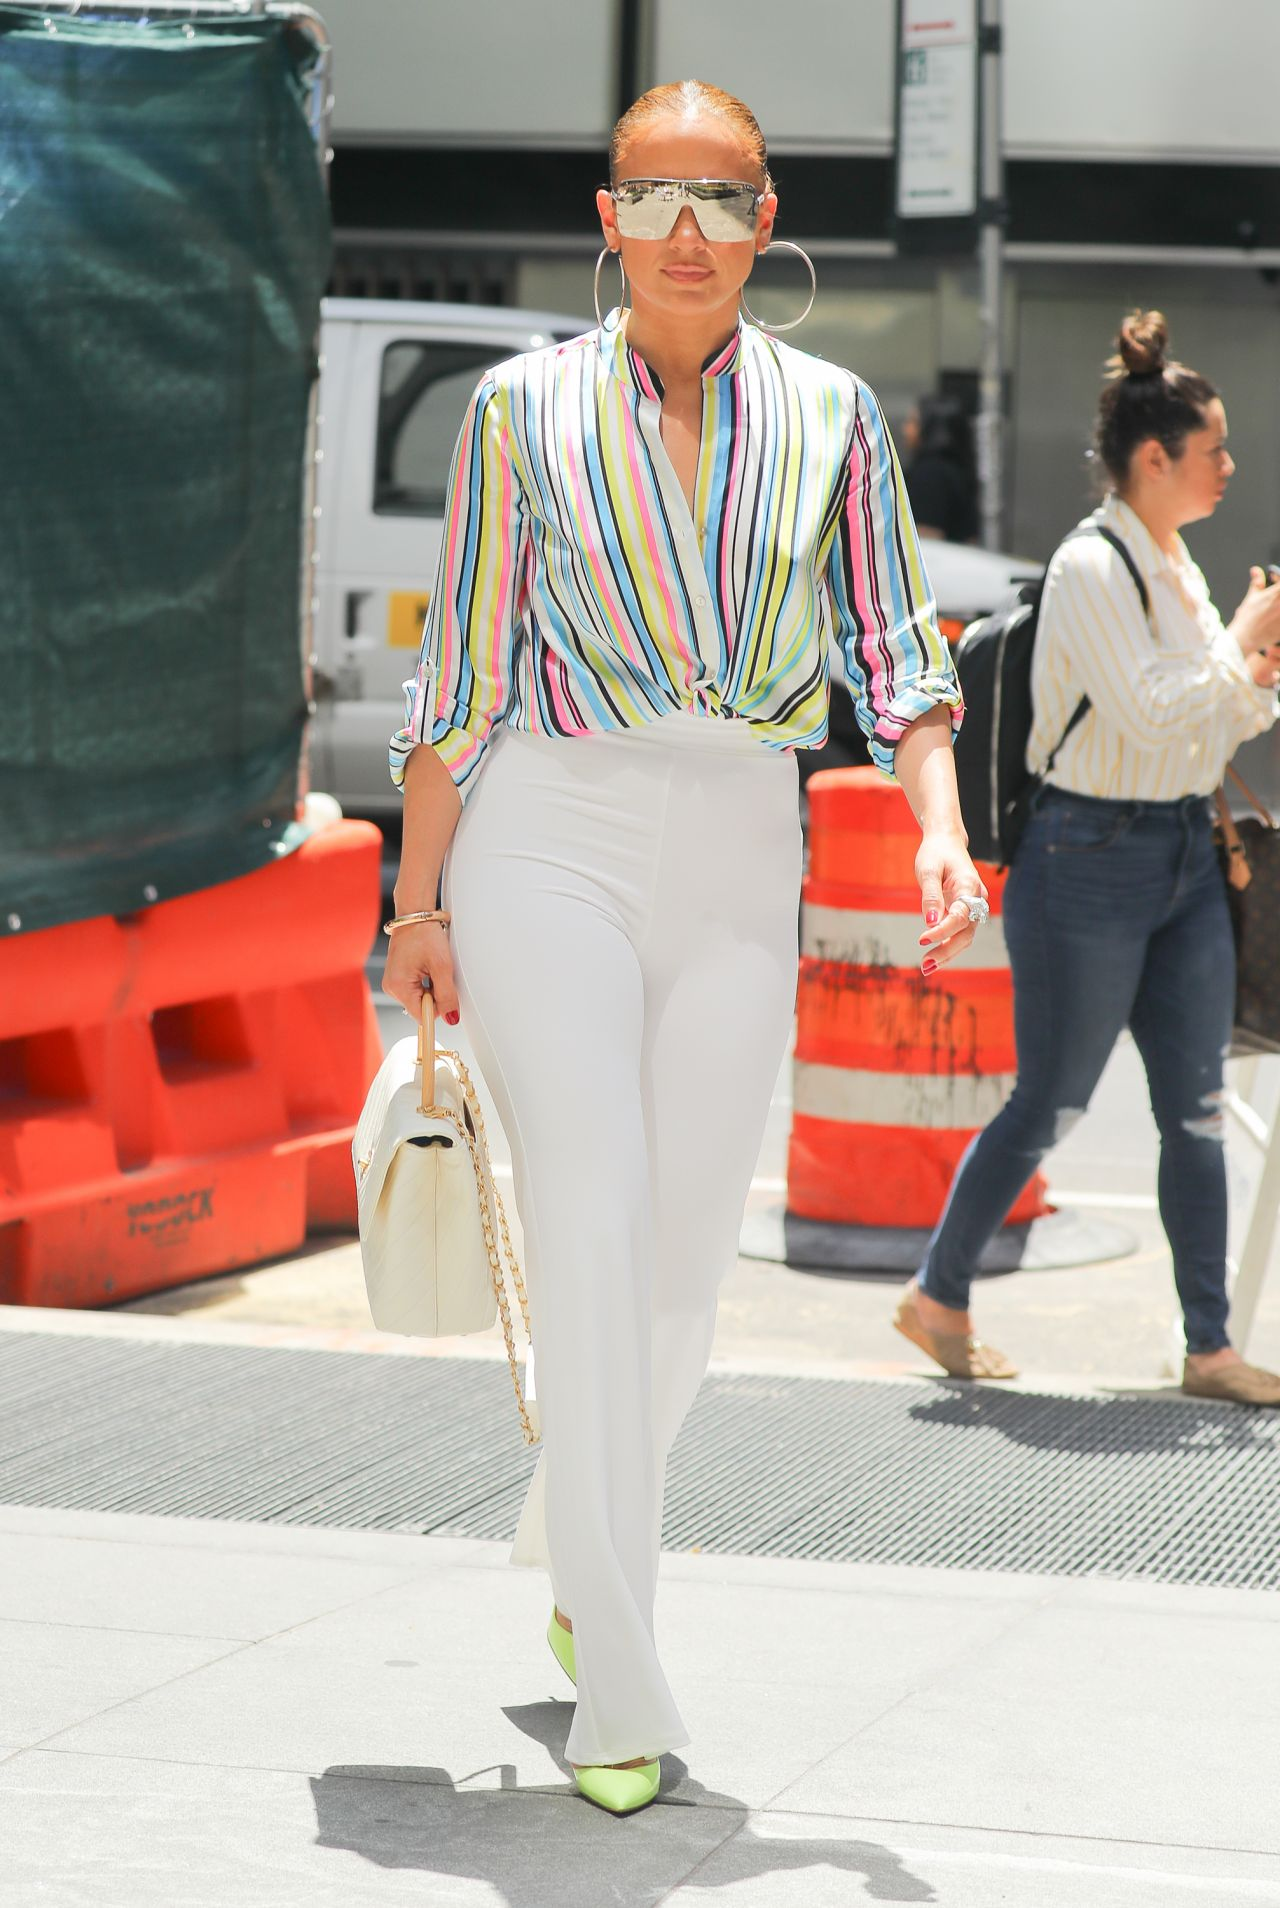 jennifer-lopez-and-alex-rodriguez-leaving-the-casa-lever-in-nyc-06-29-2018-1.jpg